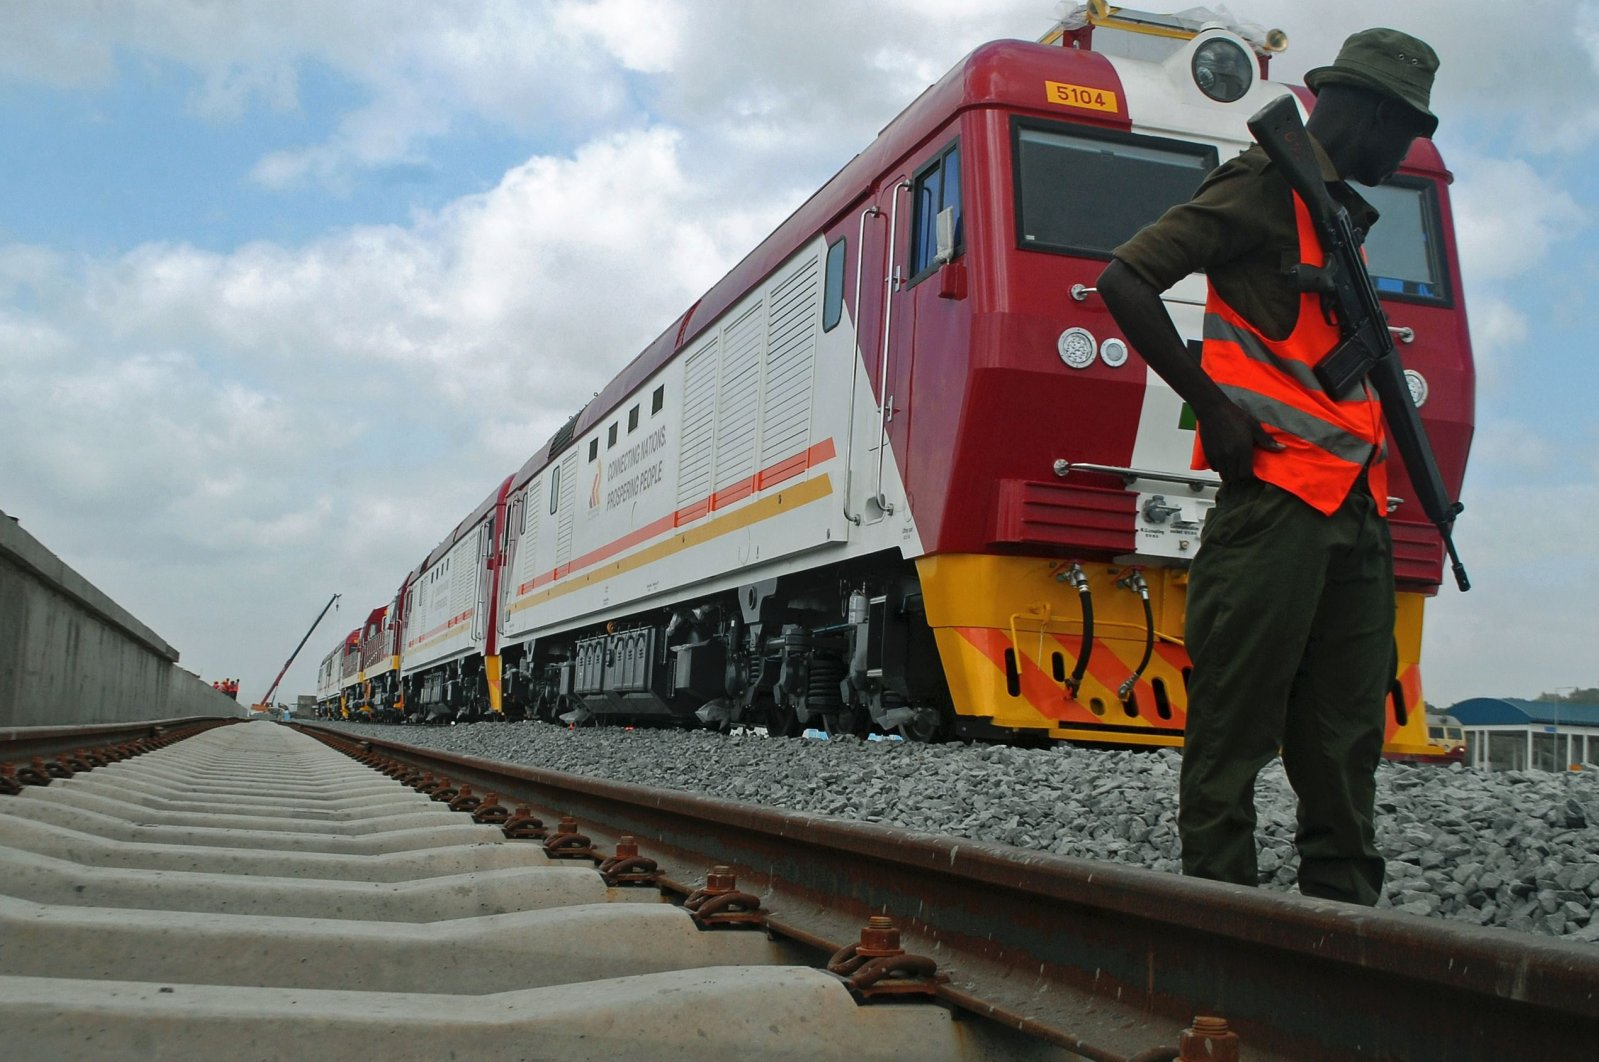 A security guard on patrol during the launch of the first batch of standard gauge railway freight locomotives at the port in Mombasa, Kenya, Jan. 11, 2017. (AFP Photo)